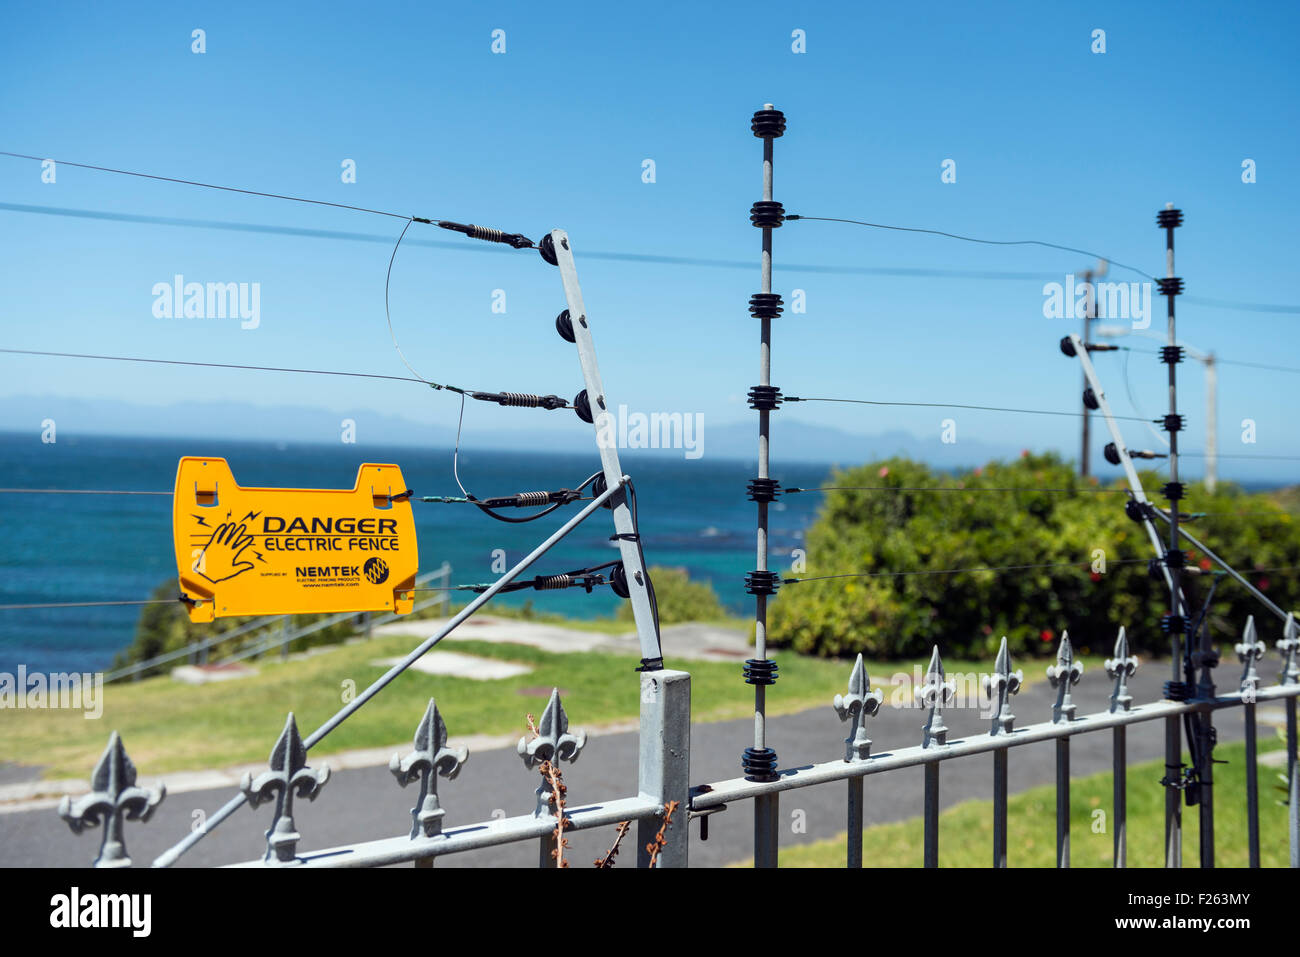 Electric Fence Africa Stock Photos Amp Electric Fence Africa